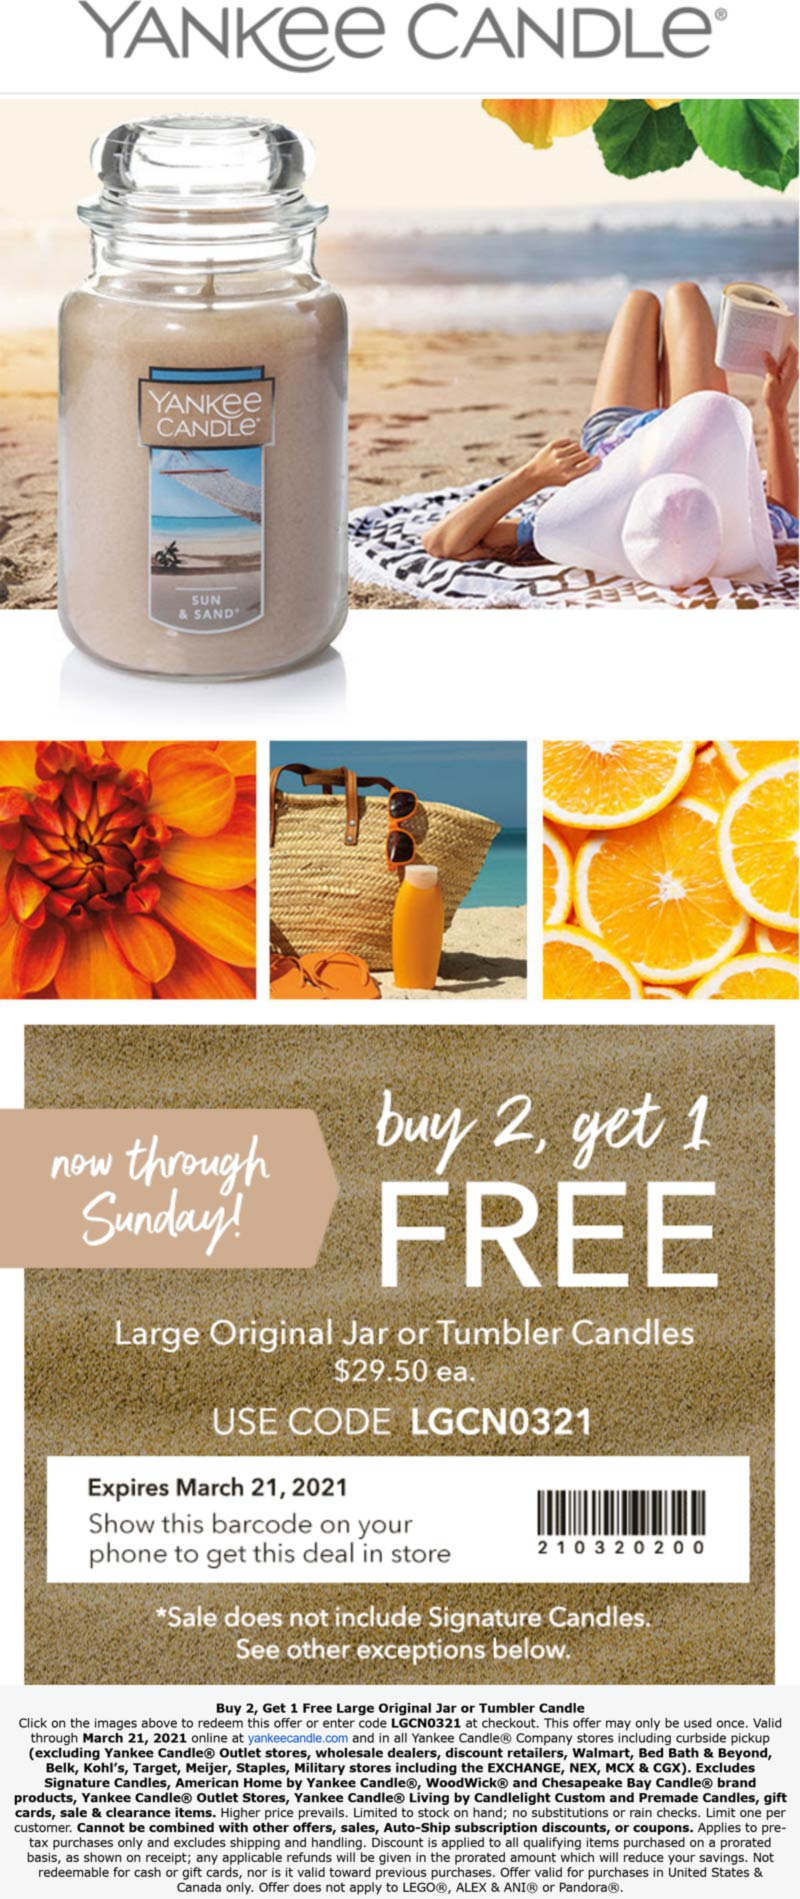 Yankee Candle stores Coupon  3rd large candle free at Yankee Candle, or online via promo code LGCN0321 #yankeecandle